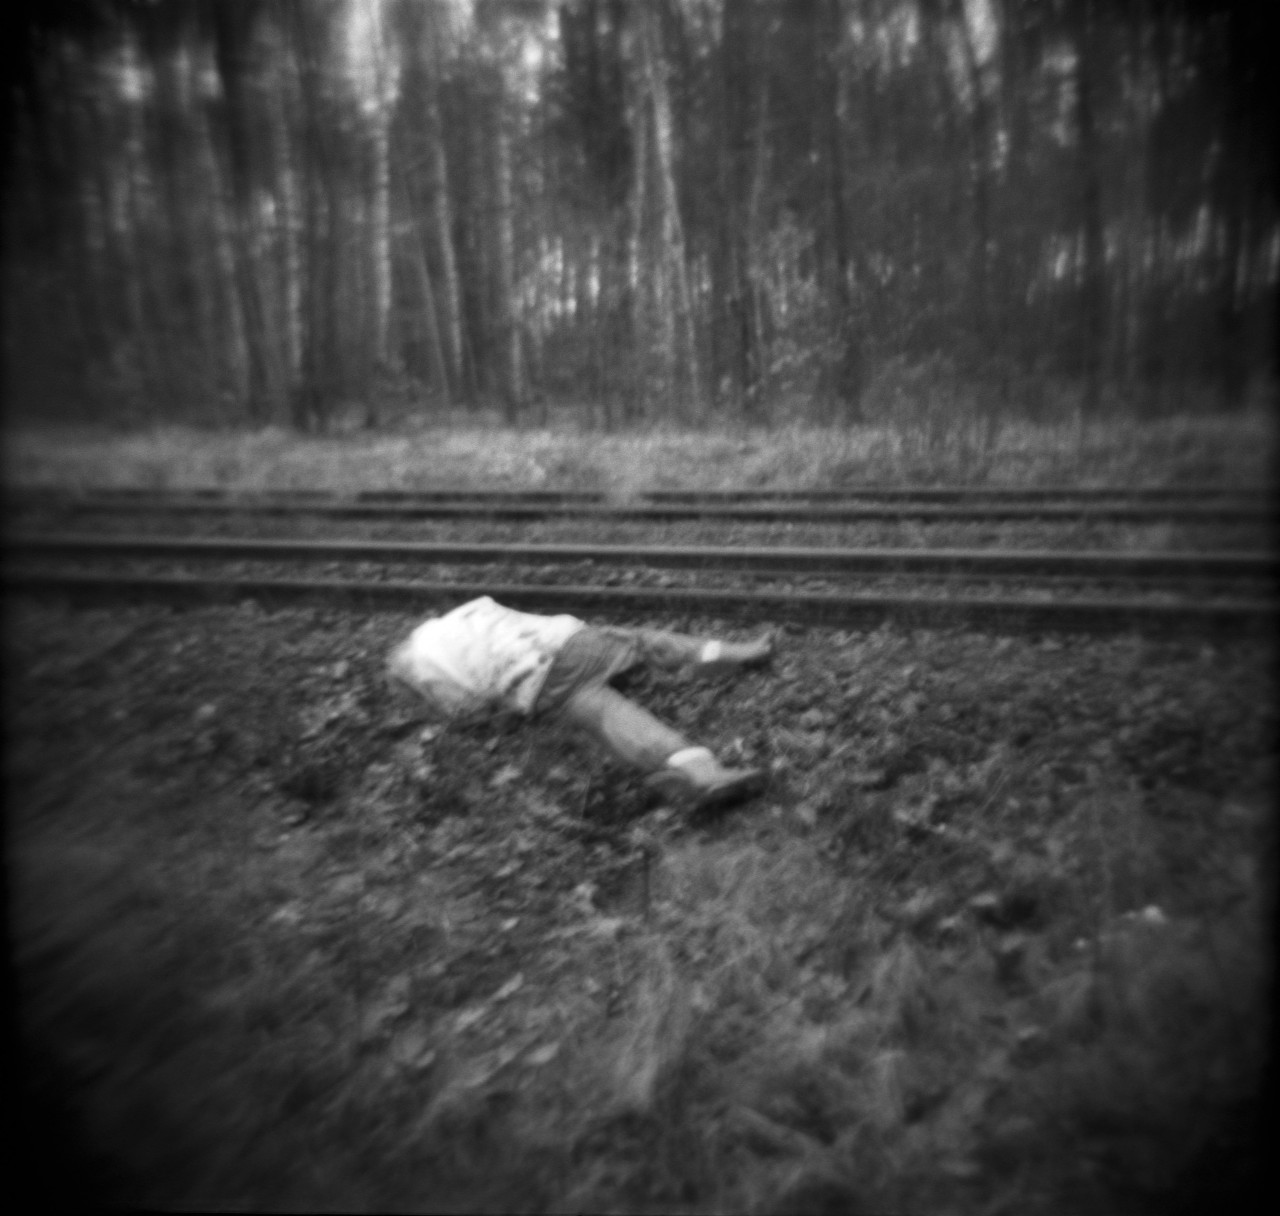 Unknown man found in the village of Sławków  near Dąbrowa Górnicza,  probable cause of death - suicide